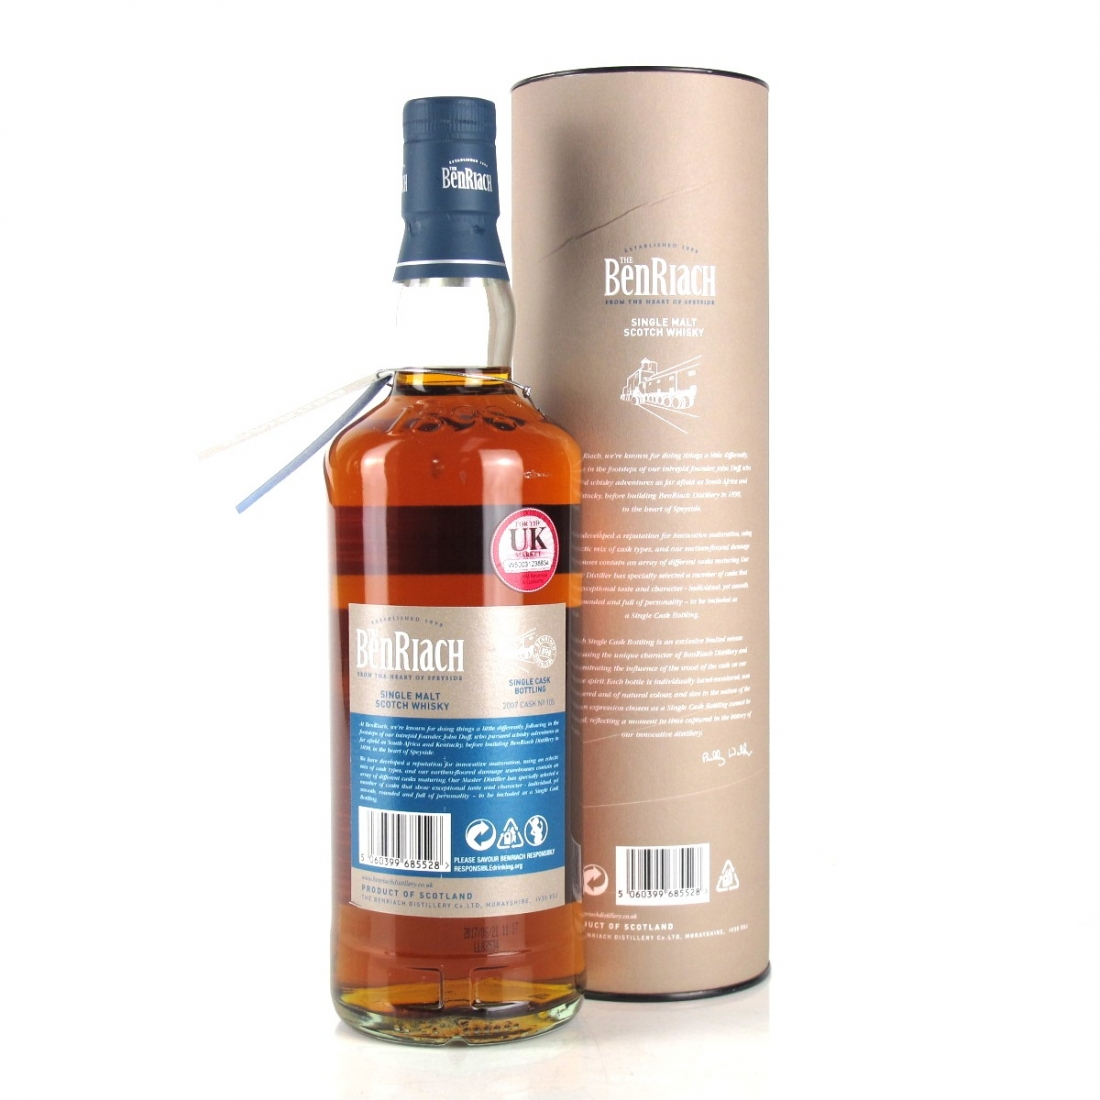 Benriach 2007 Single Cask 10 Year Old Peated / Oloroso Sherry Cask